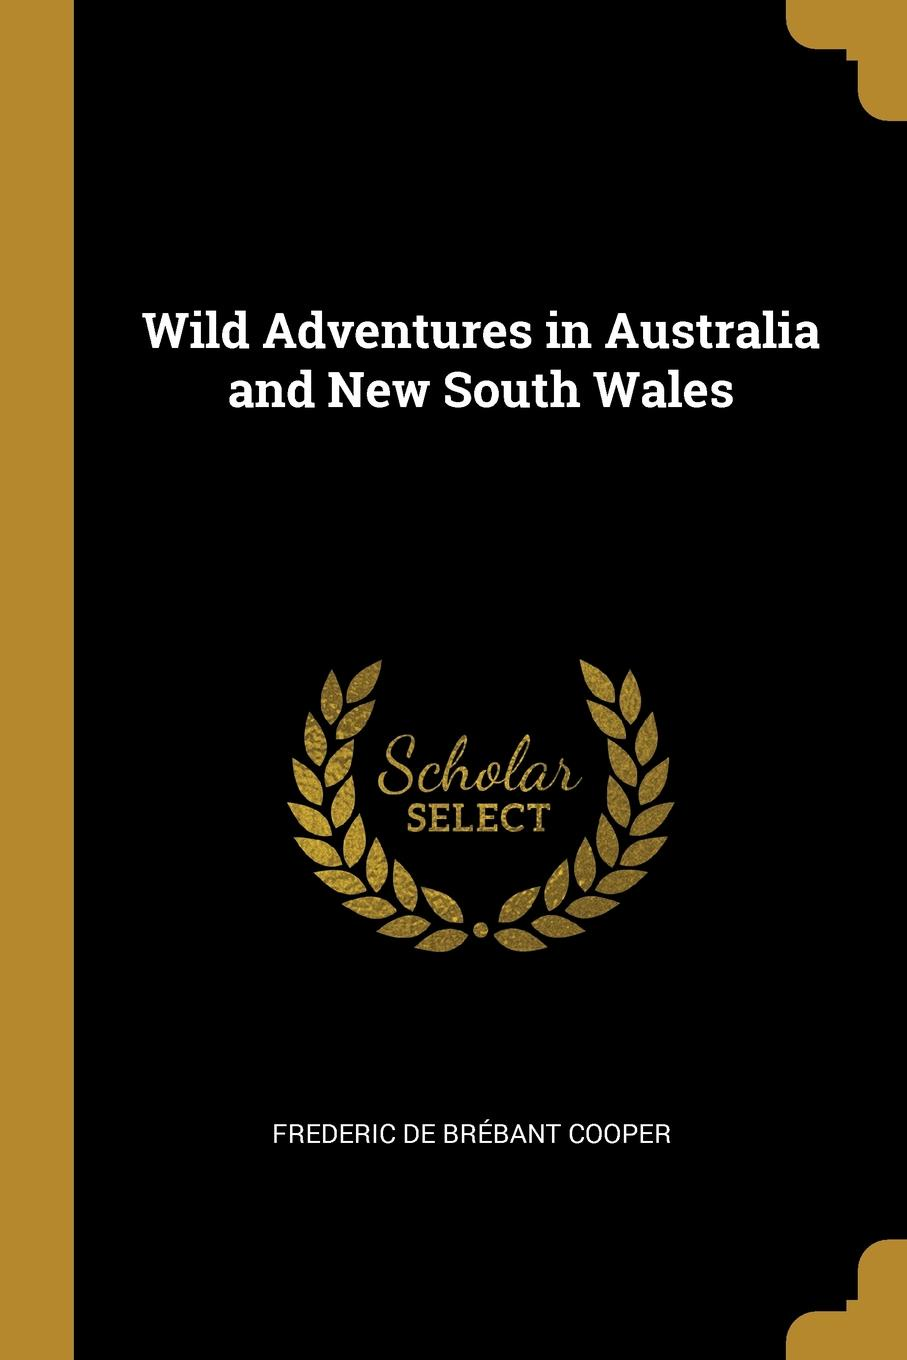 Frederic de Brébant Cooper Wild Adventures in Australia and New South Wales